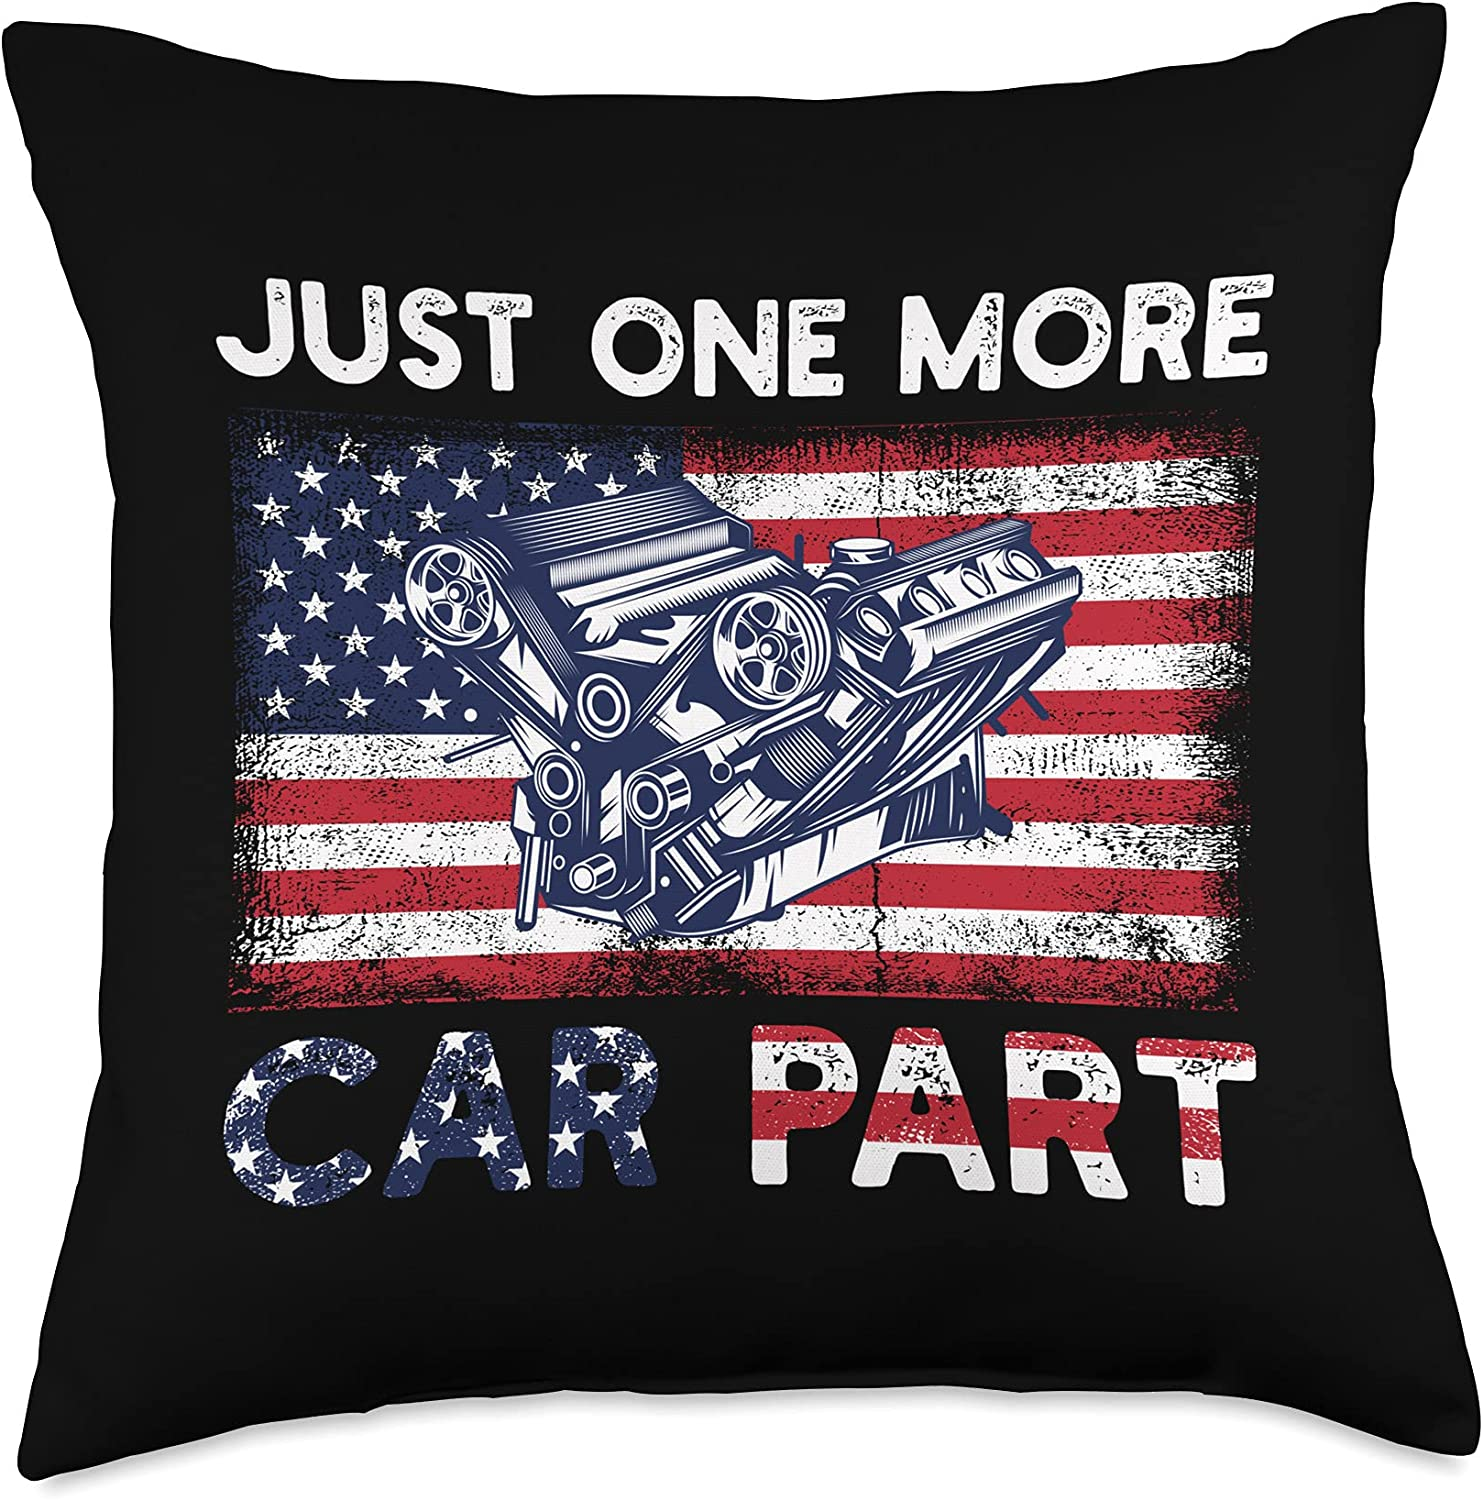 Just One More Car Part National products I Throw For Promise Free shipping on posting reviews Enthusiast Automotive